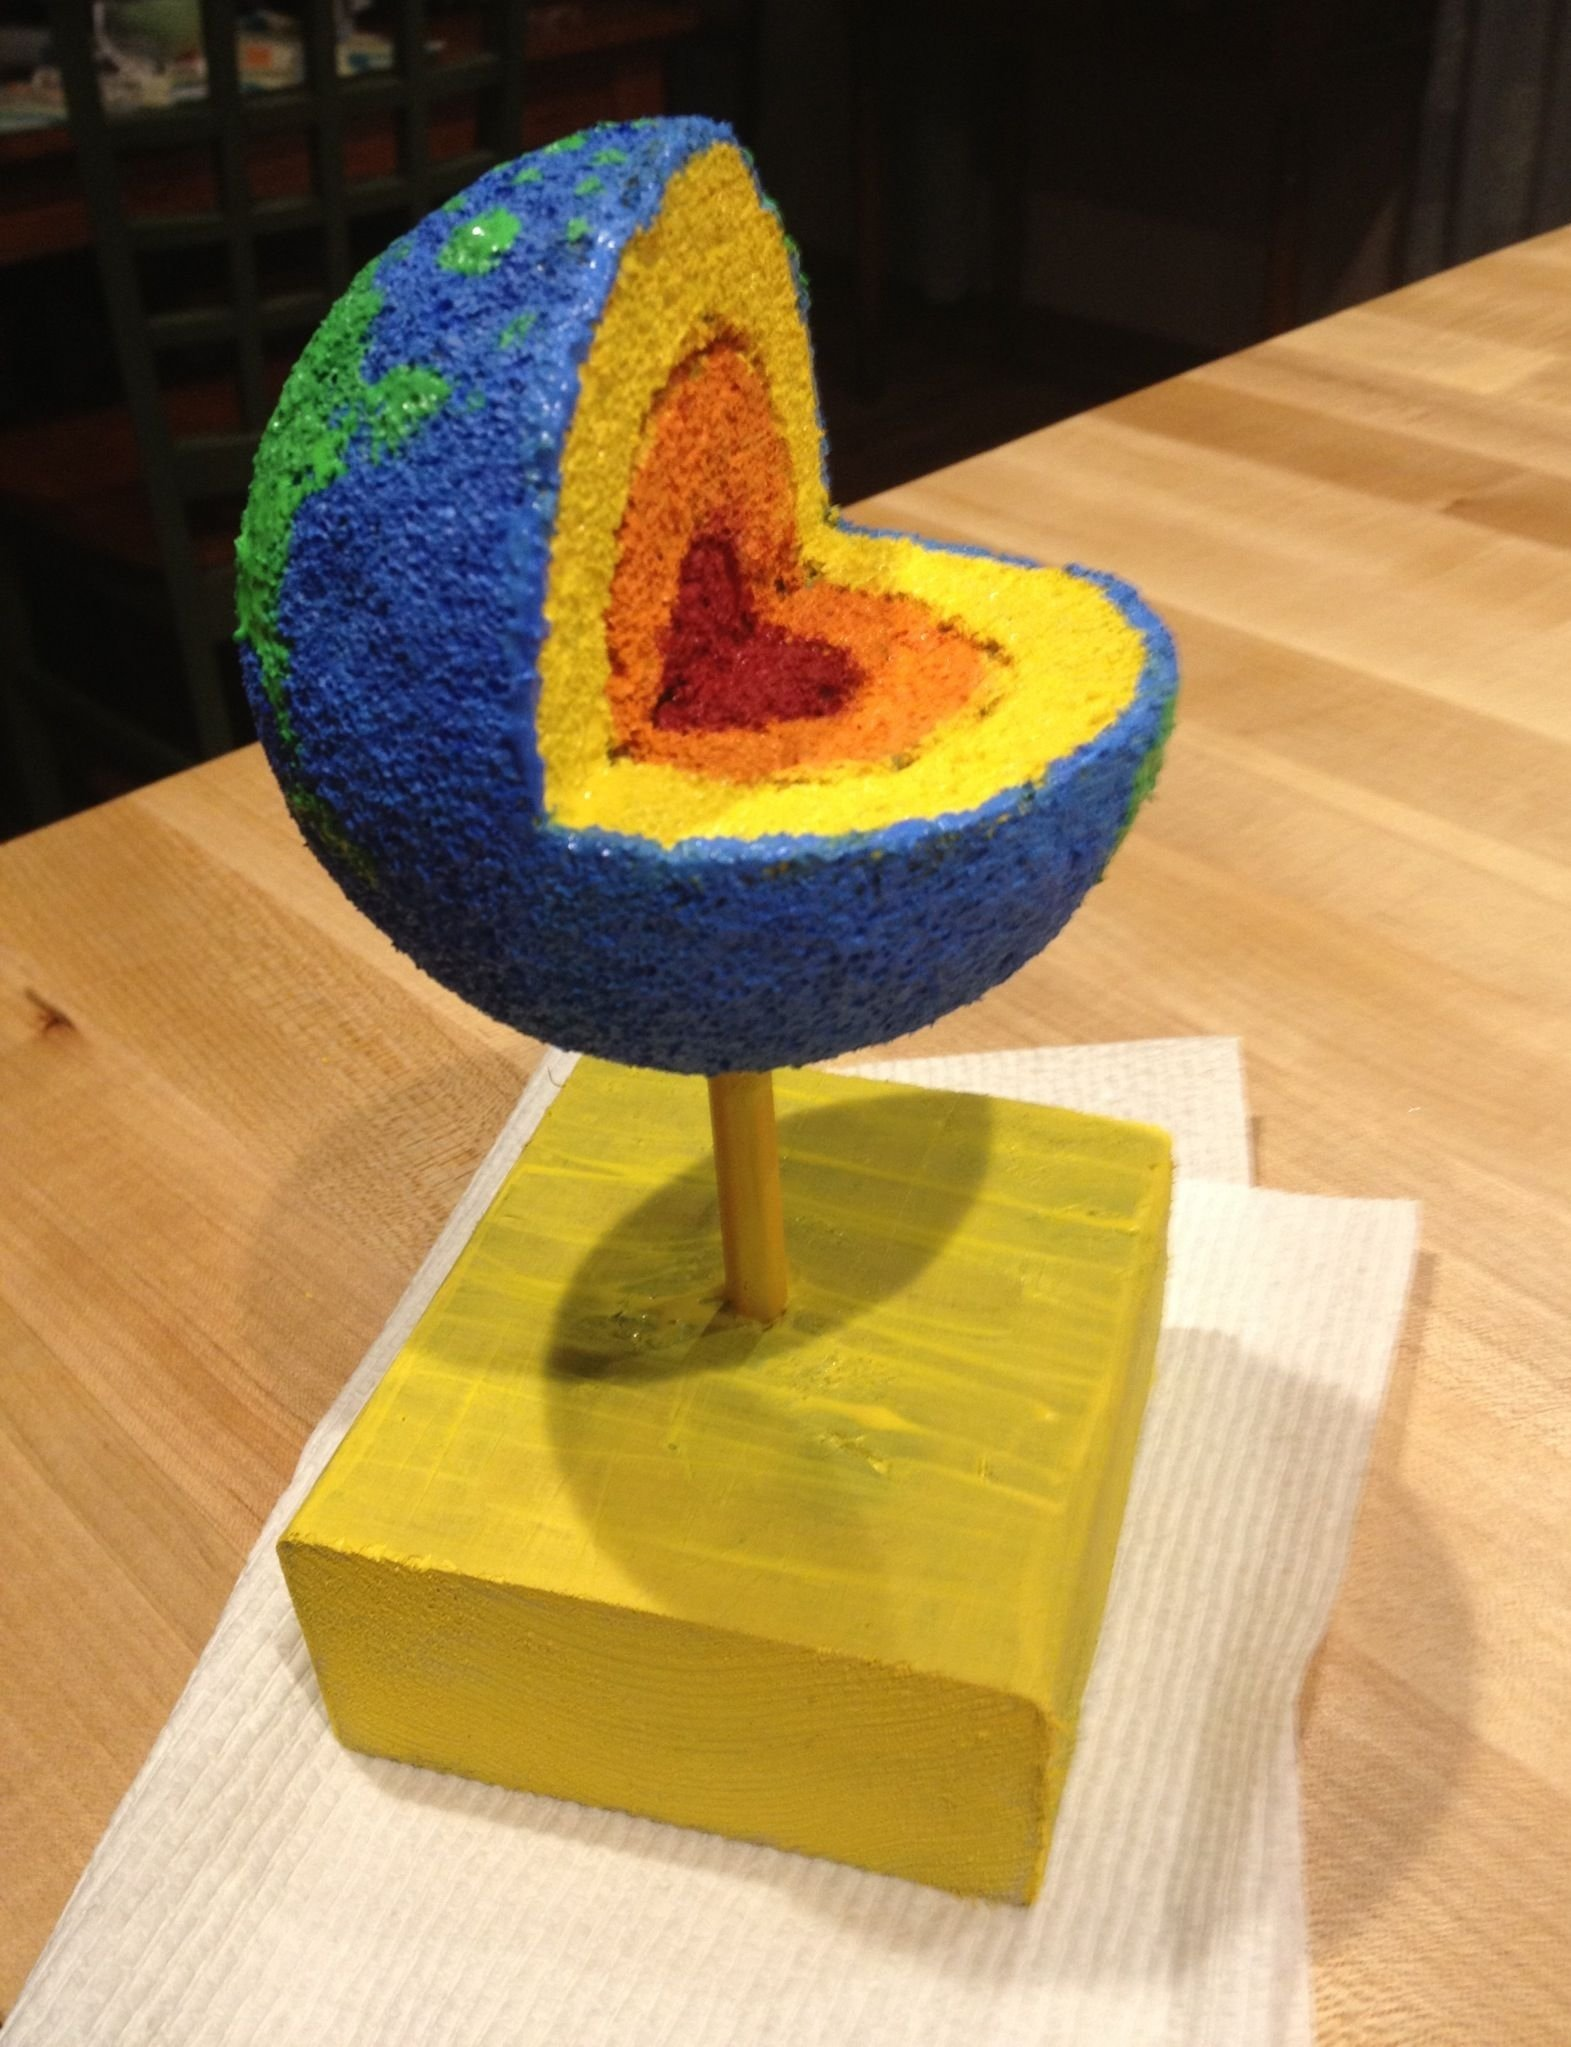 10 Famous Layers Of The Earth Project Ideas earth layer project using styrofoam ball acrylic paint pencil and